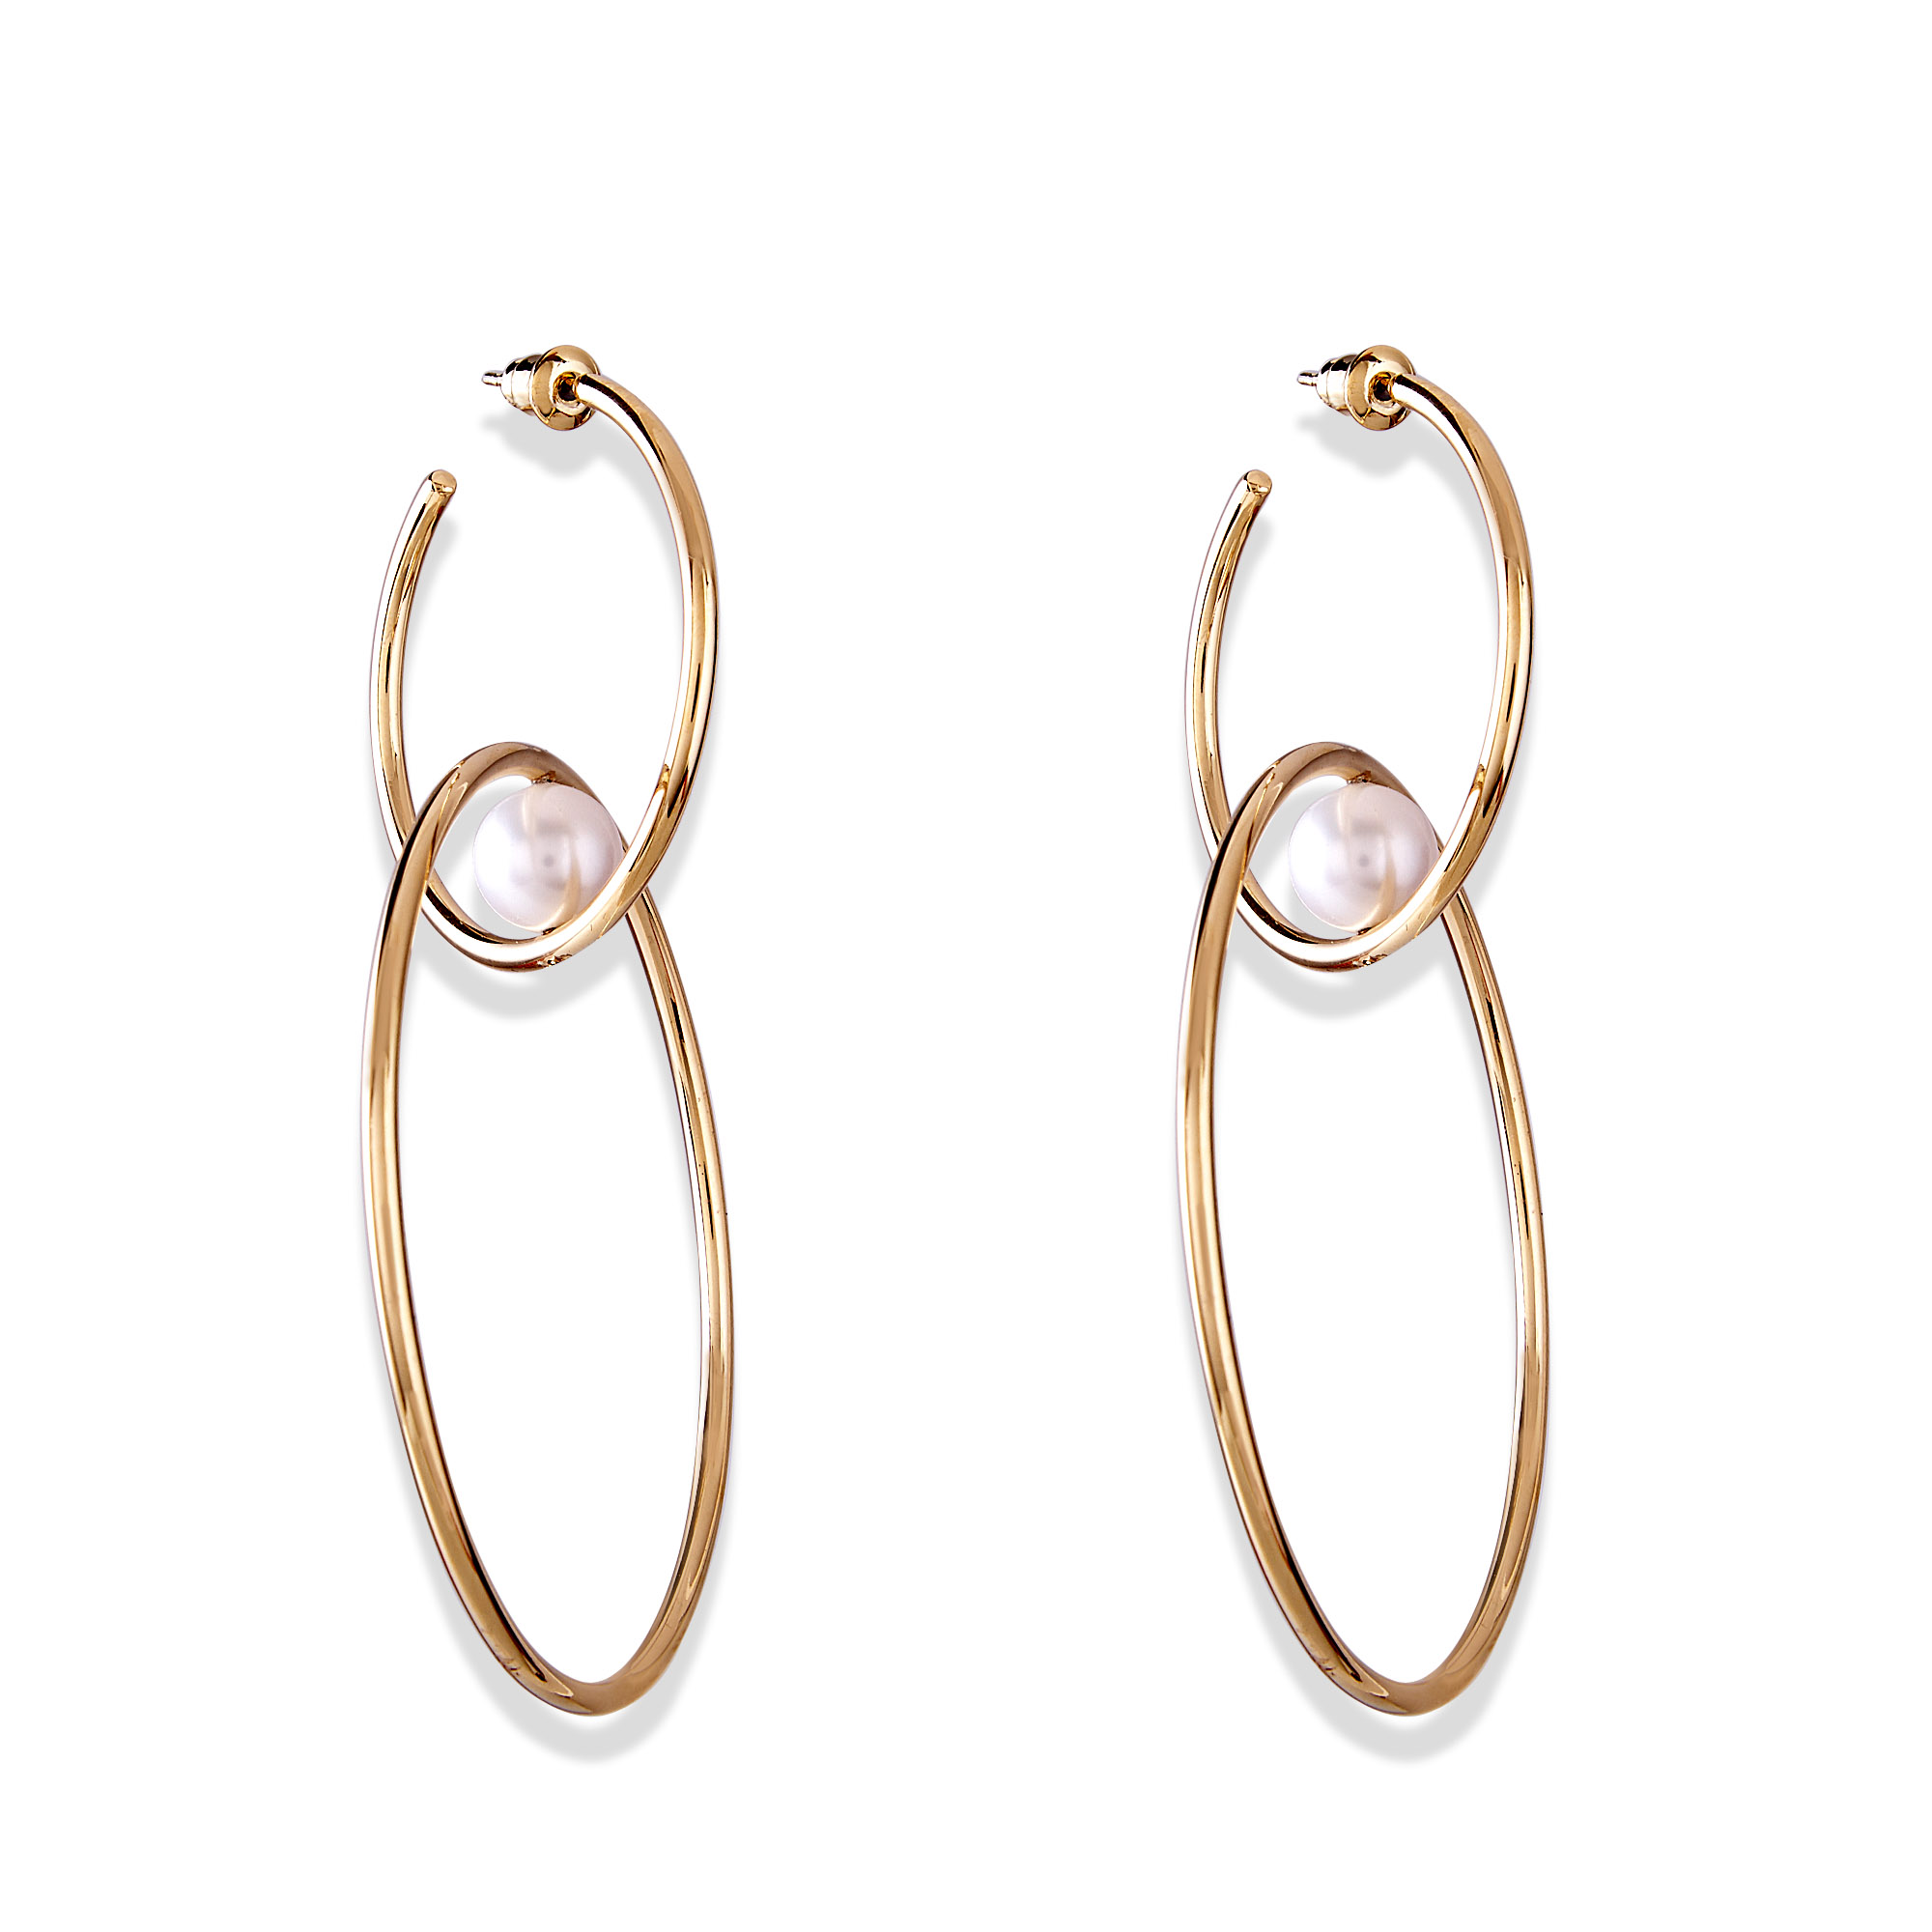 GP_Earrings_003a.jpg